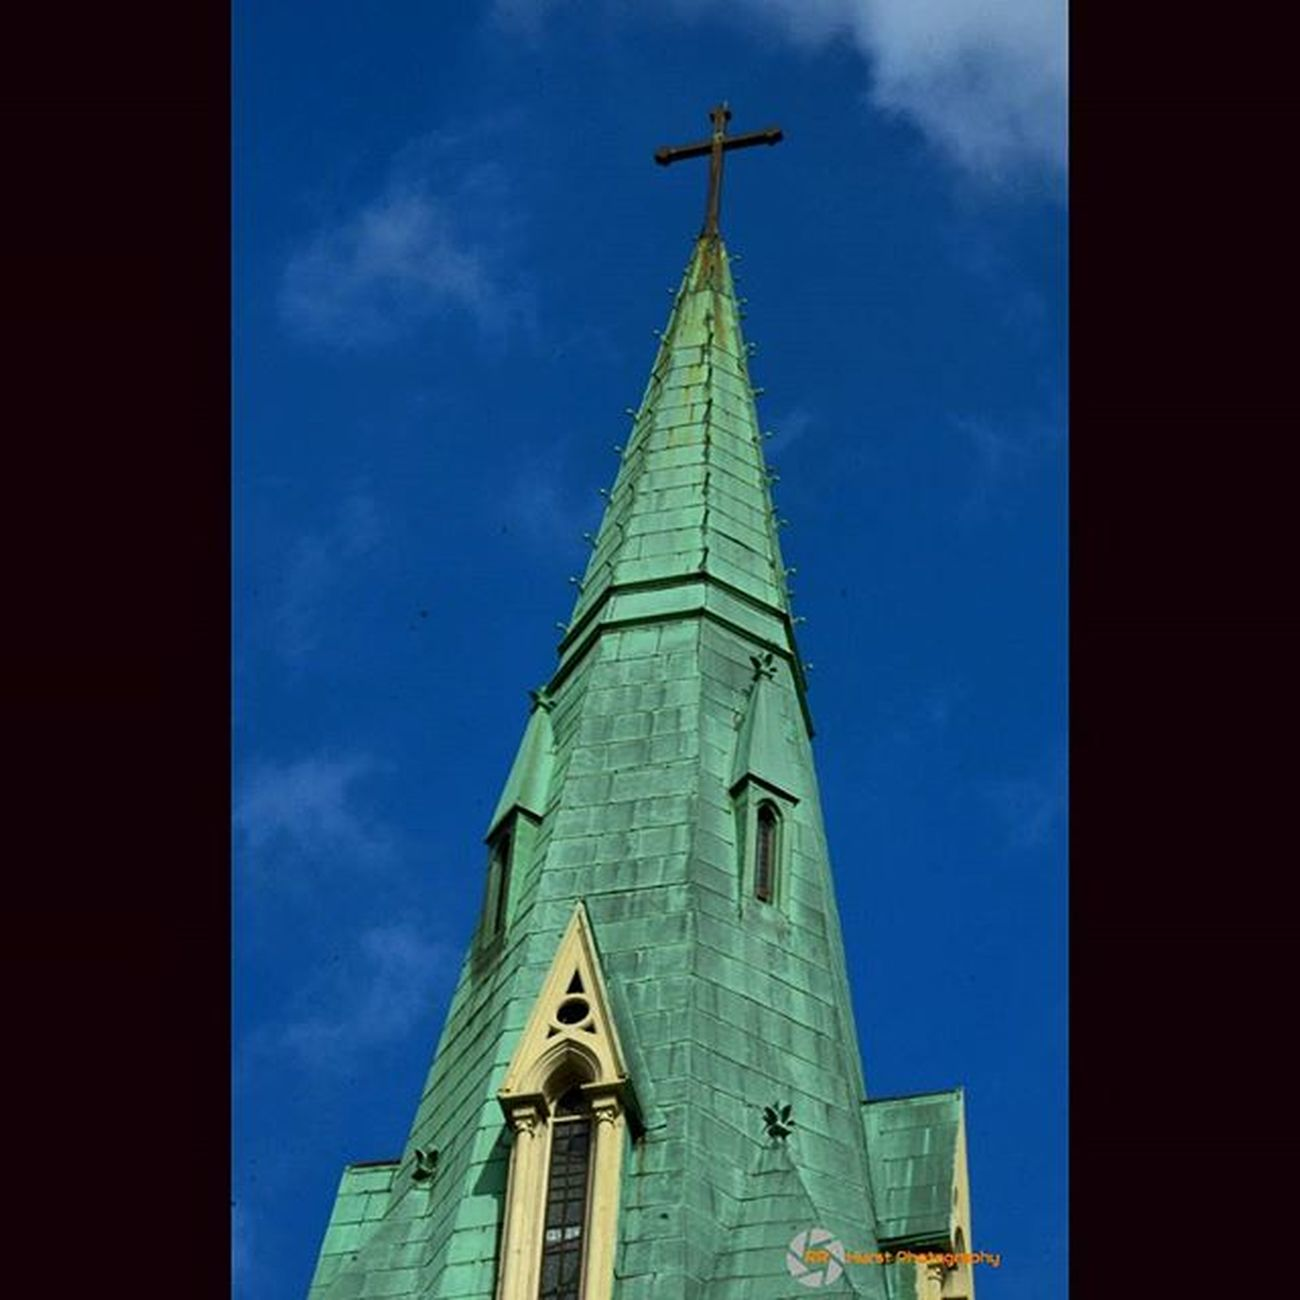 @lstavenor Sometimes you just have to look up. @outdoorphotomag @photographymagazine @PhotographyWeek @photonewscanada Hamilton Lockestreet Lockestreetshops Church Blueskies Copperpatina Steeple Green Cross Lookup Getoutside OutsideIsFree Southernontariophotographer Lovephotography  Nikonphotographers Nikonphotography Prophotographer Nikond7000 Rrhurstphotography Artsburlington Latowphotographersguild